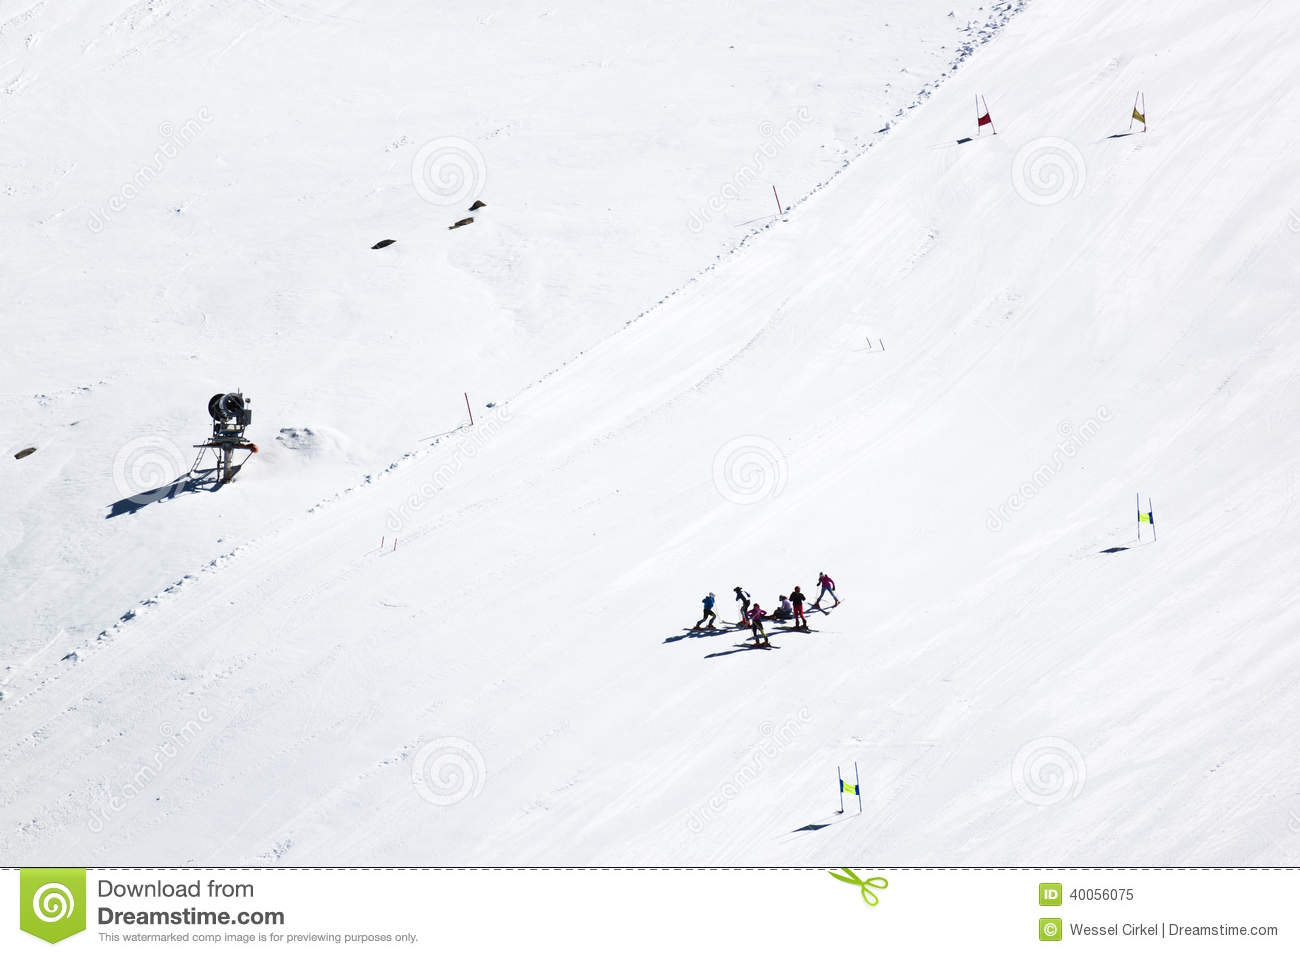 Ski instruction, molltaler glacier, austria editorial image.